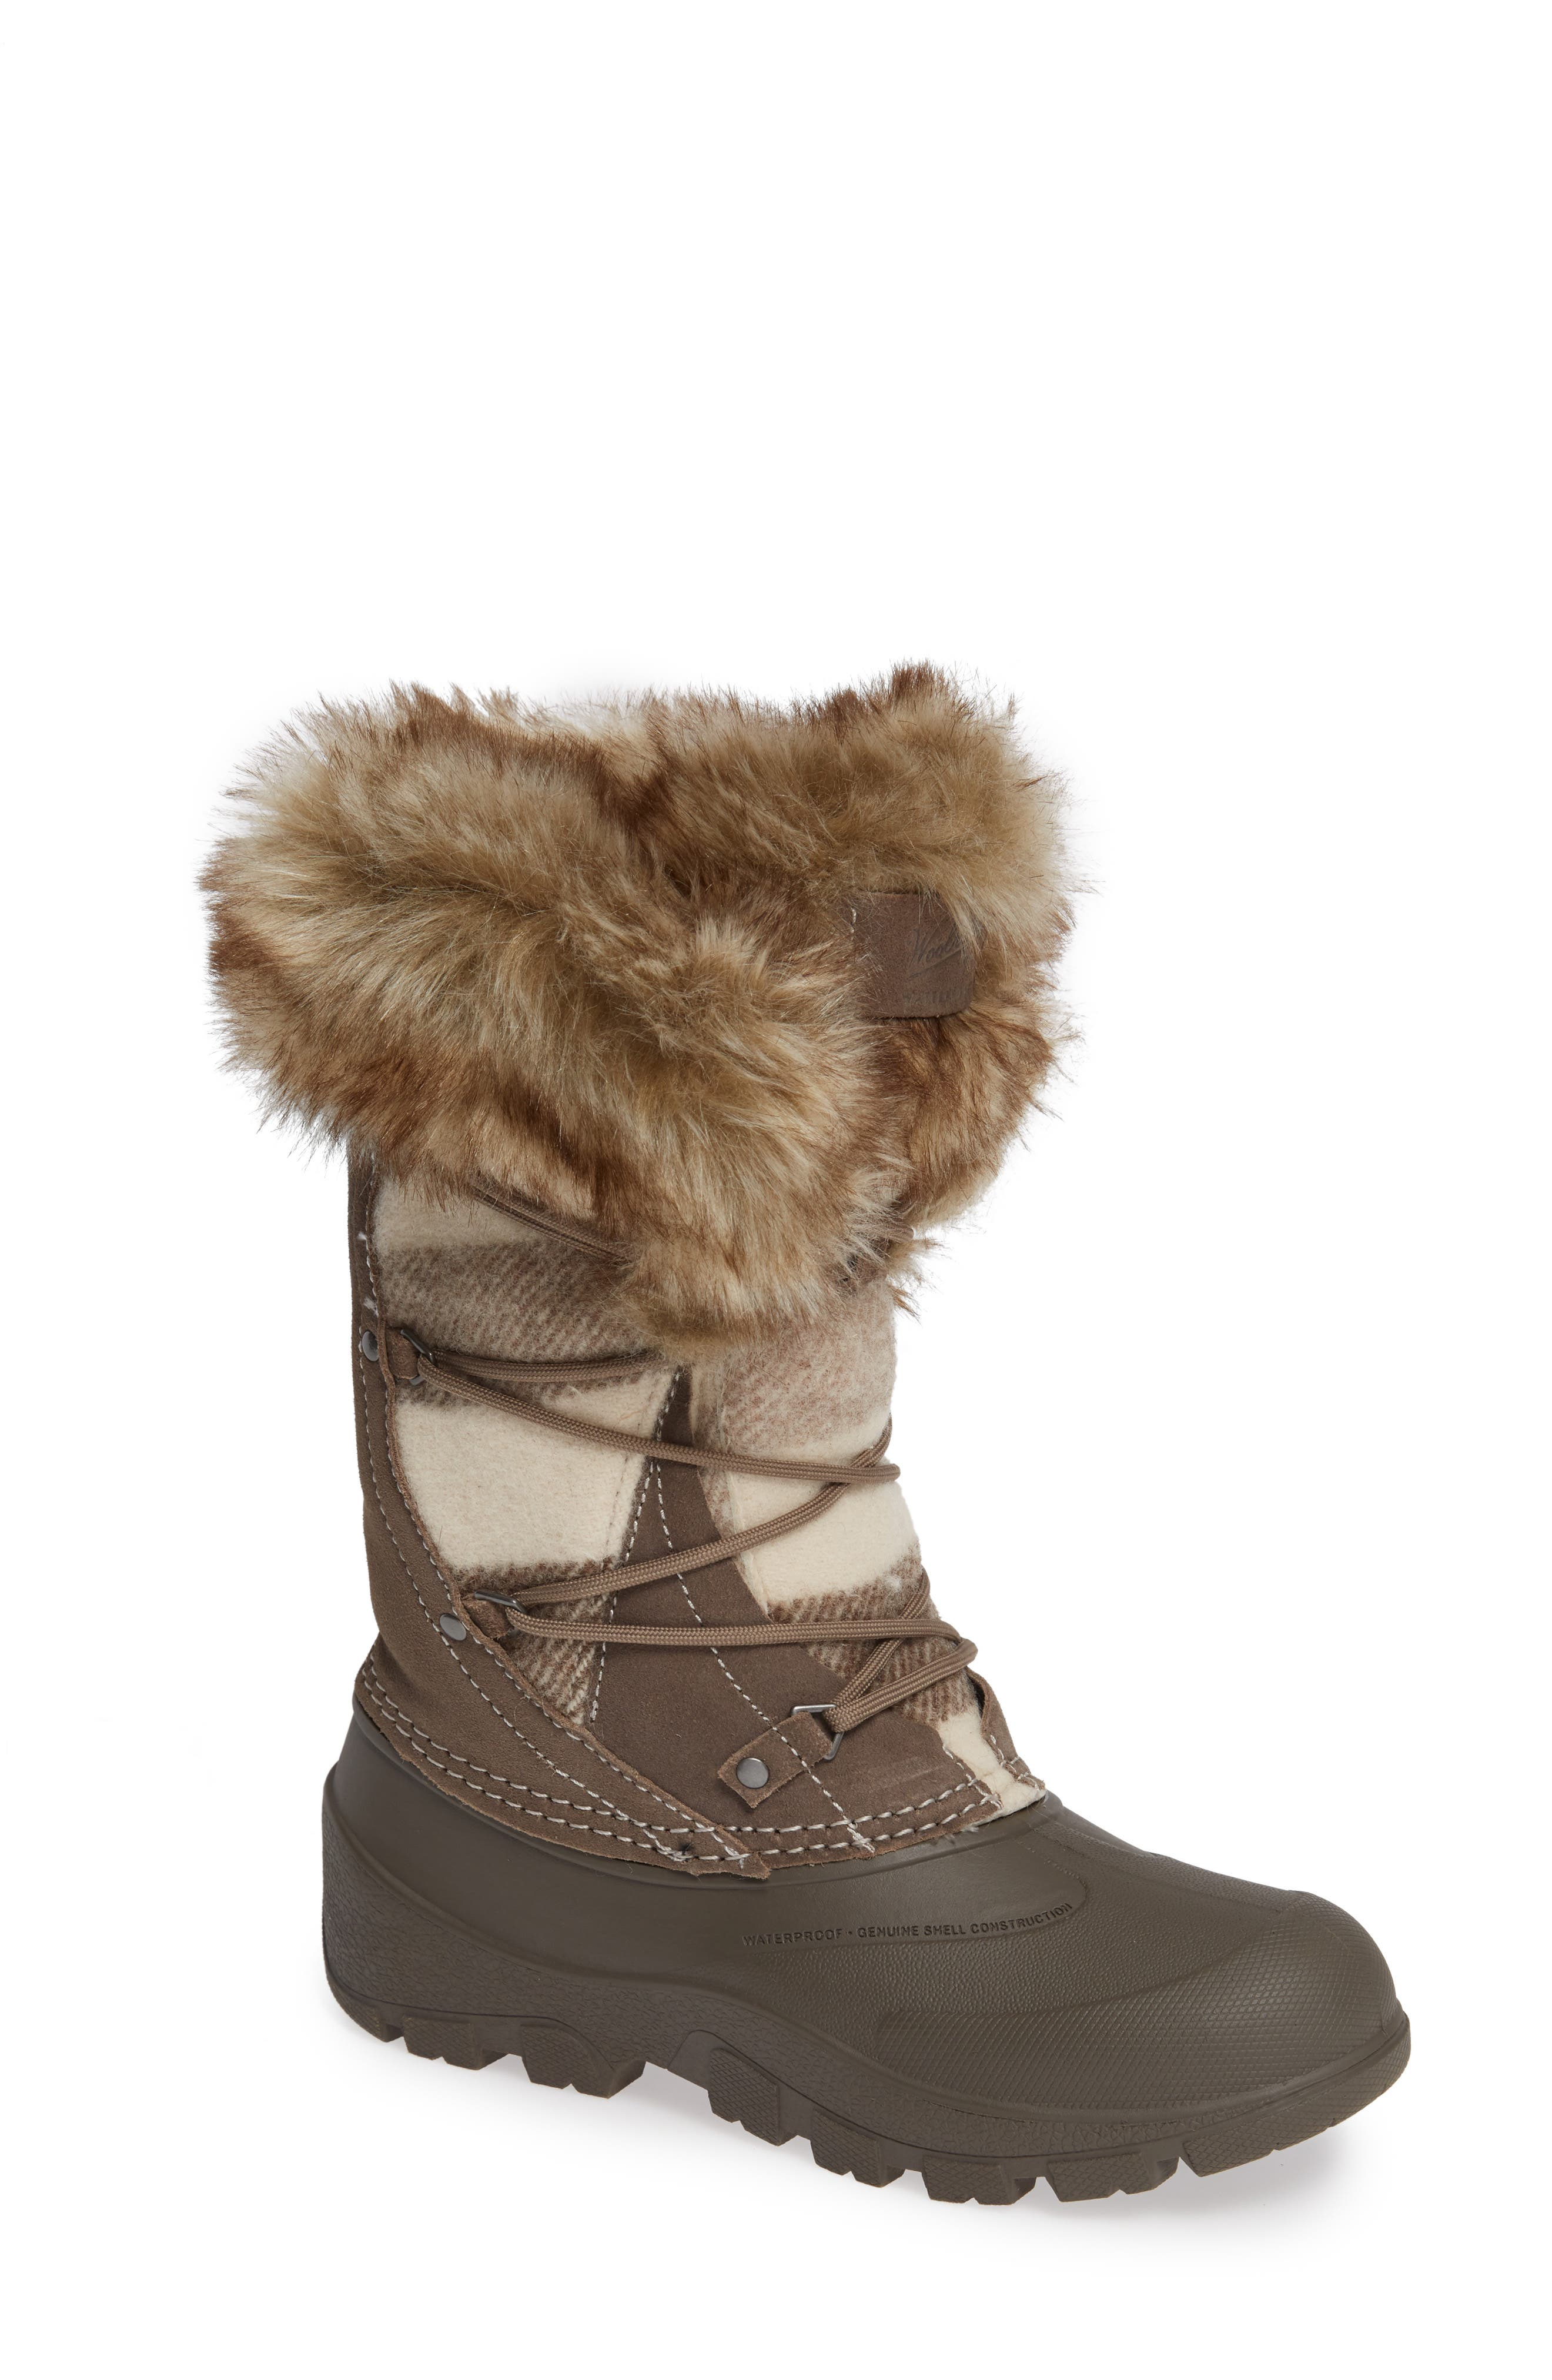 Woolrich Ice Cougar Waterproof Knee High Winter Boot With Faux Fur Trim, Beige